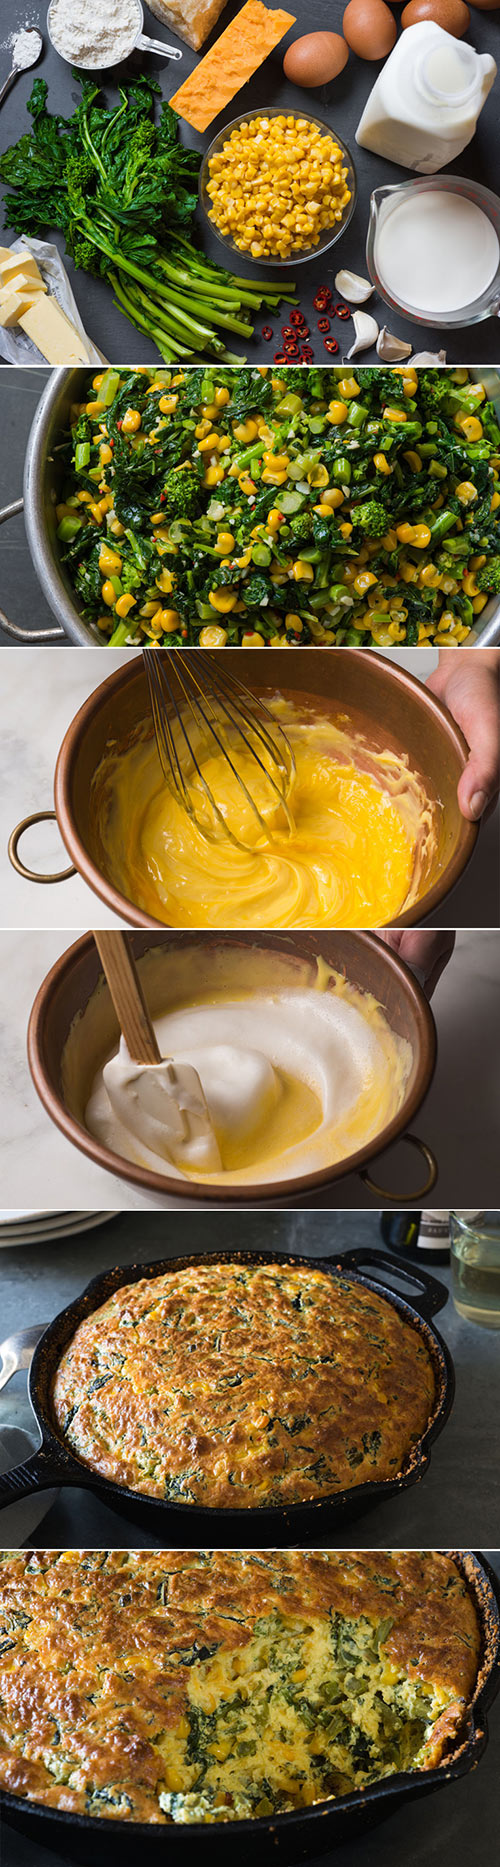 souffle-process-pinterest